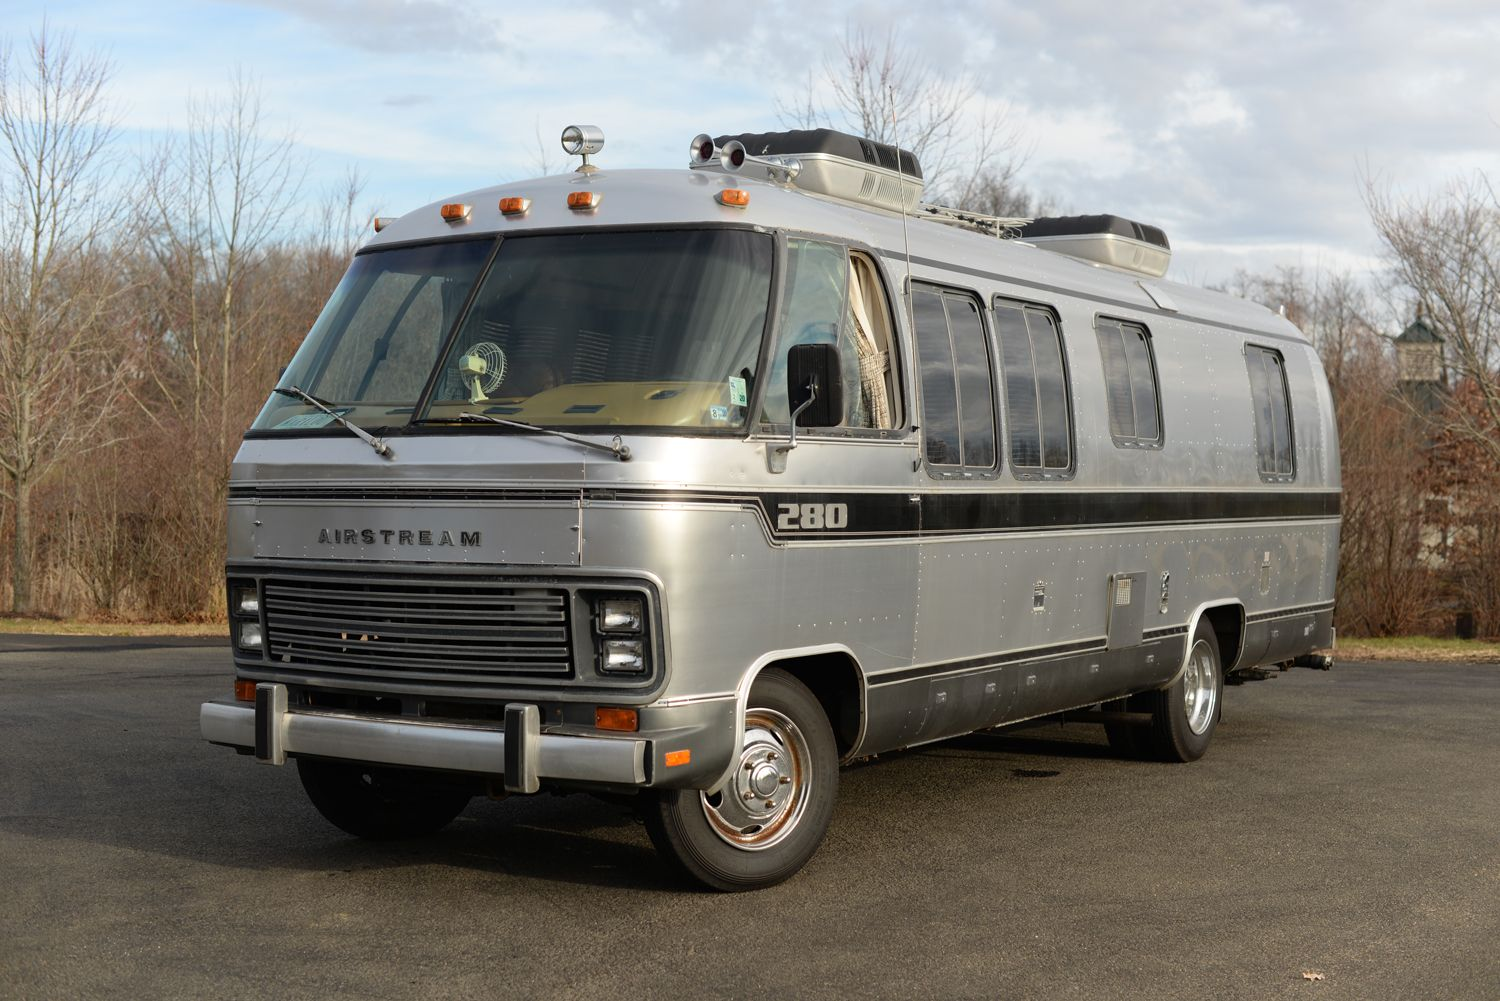 1982 Airstream 280 Excella in 2020 Classic cars online